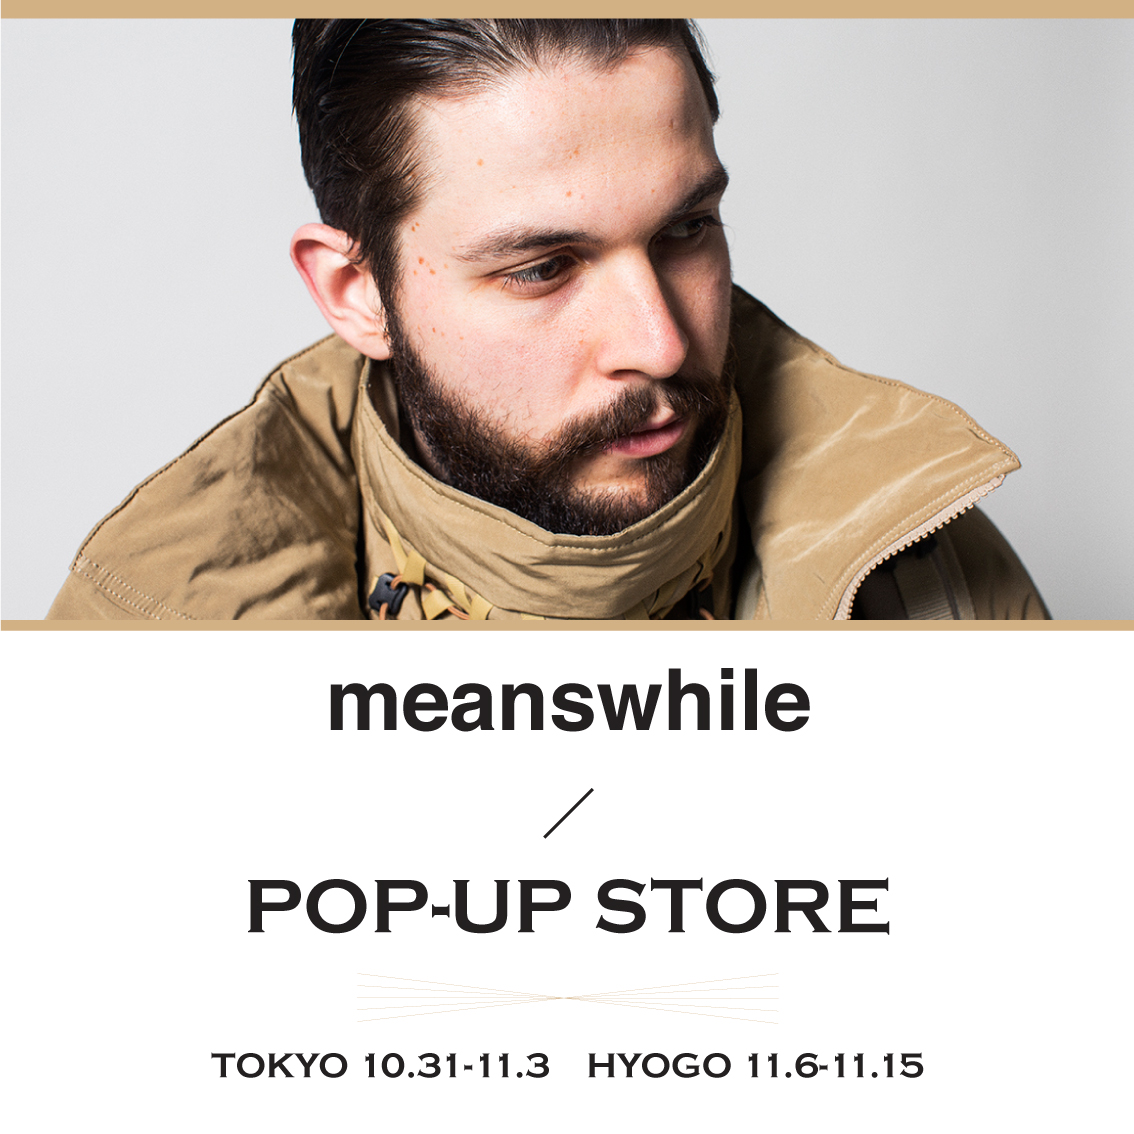 meanswhileがブランド初のPOP-UP STOREを開催